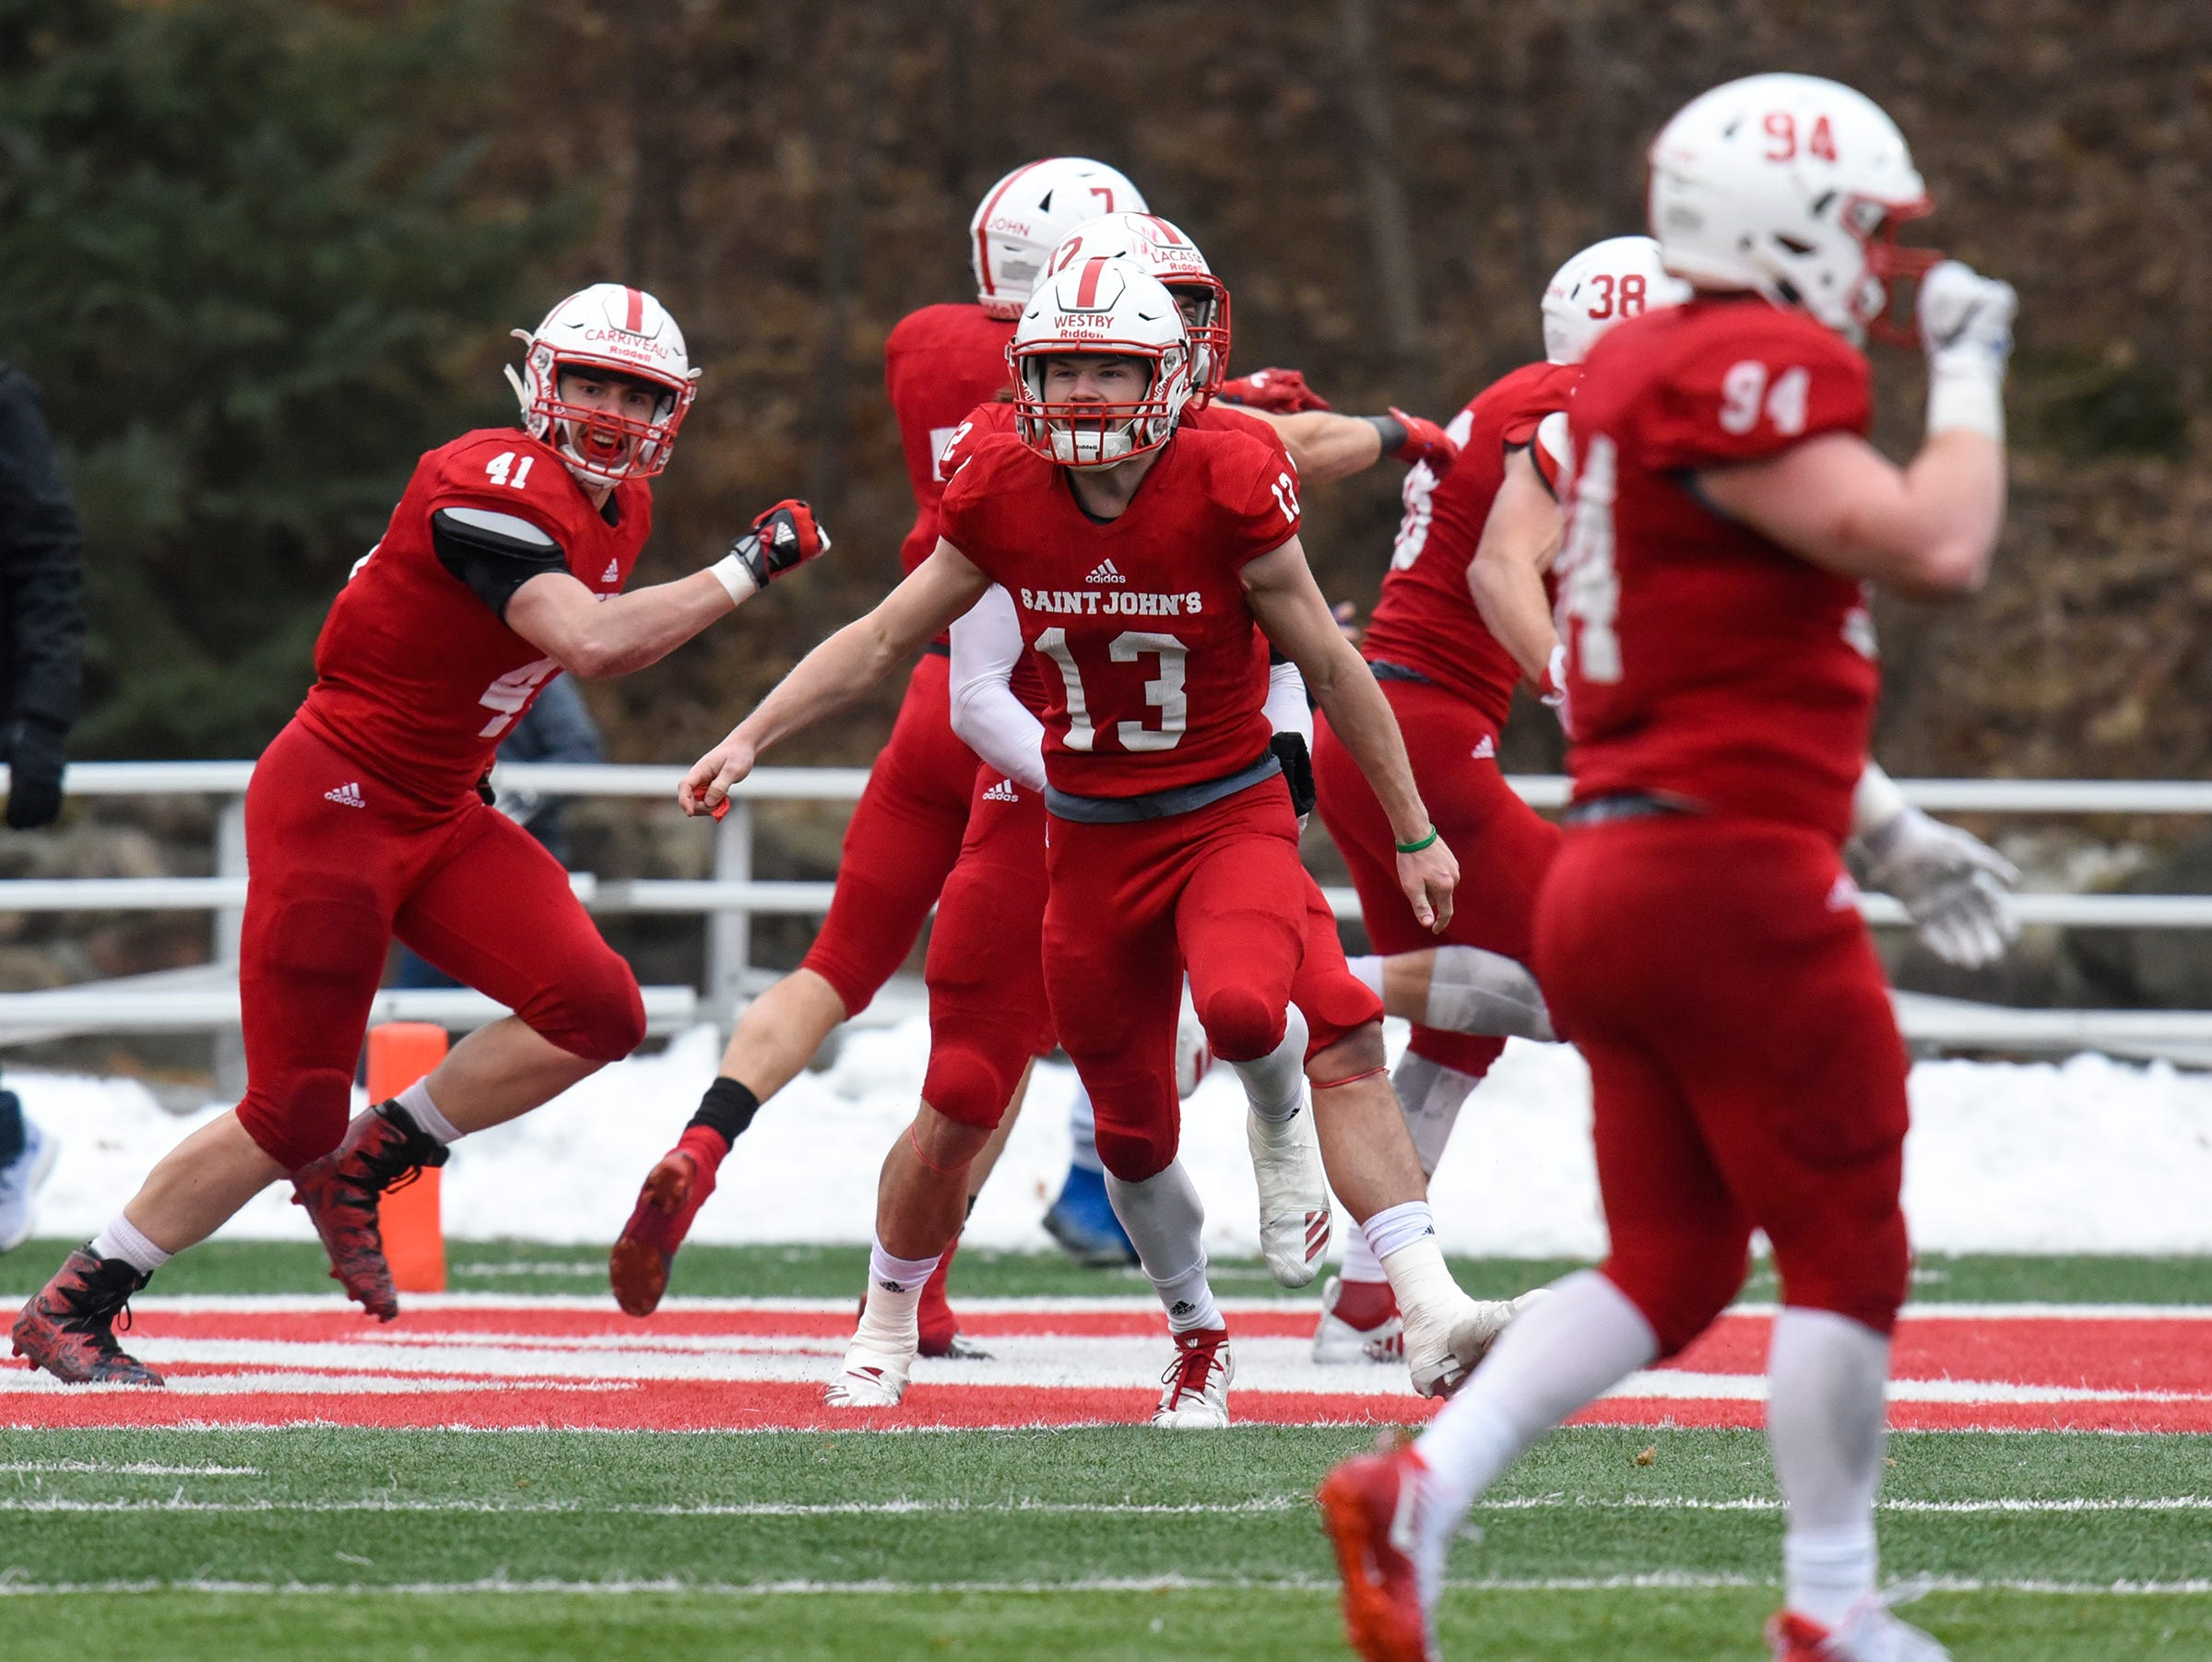 St. John's players celebrate a touchdown during the Saturday, Nov. 24, game against Whitworth at Clemens Stadium in Collegeville.